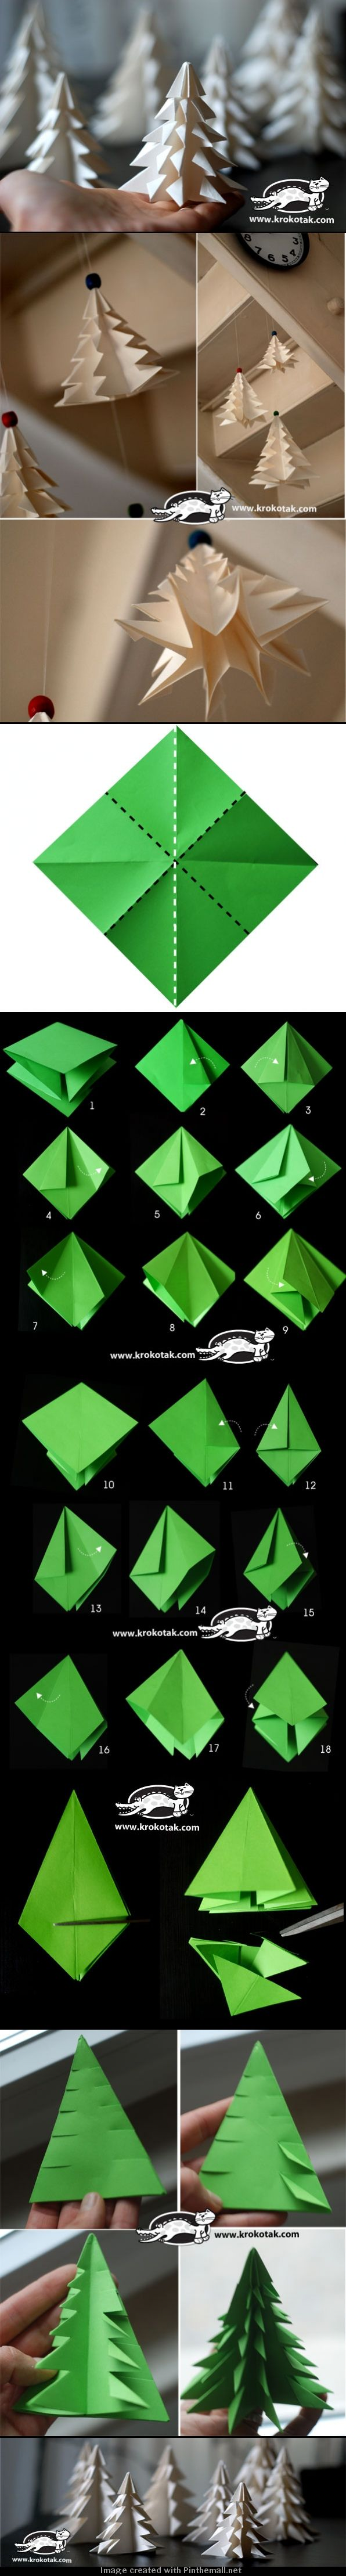 How to fold (and cut) a Christmas tree #origami #craft #paper